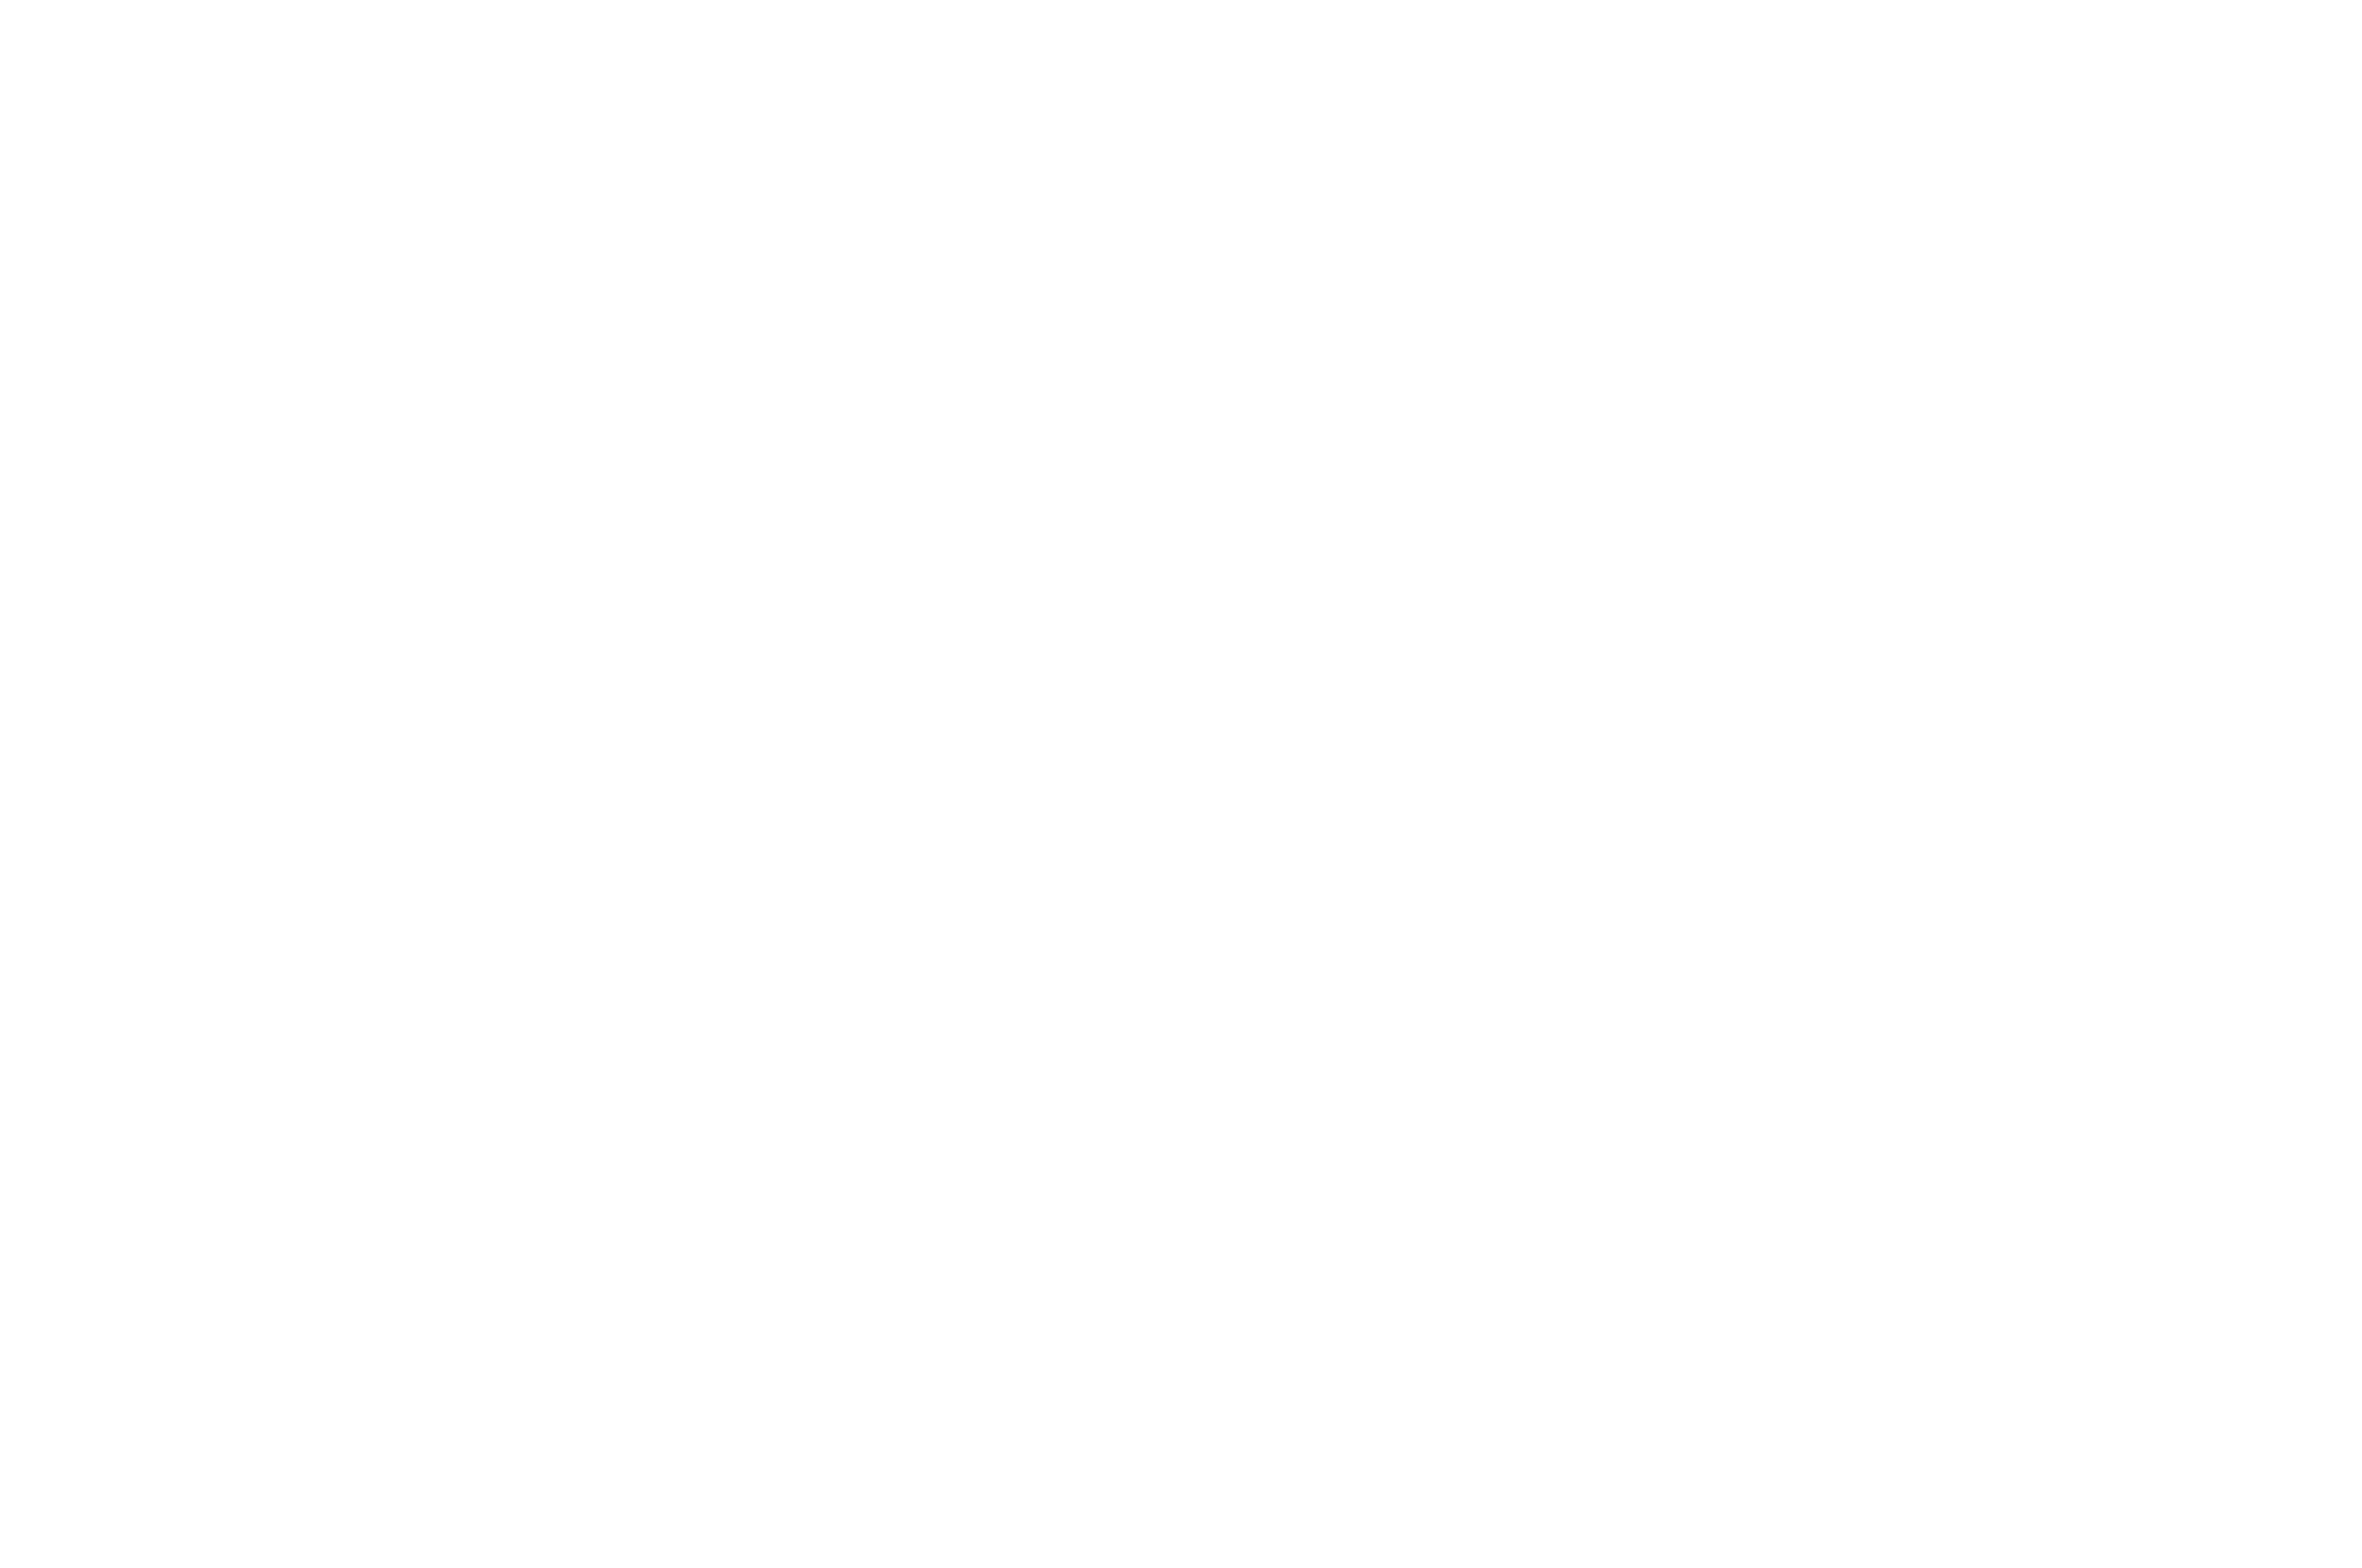 FLICKERFEST2019_OFFICIAL SELECTION LAURELS_(NEG).png